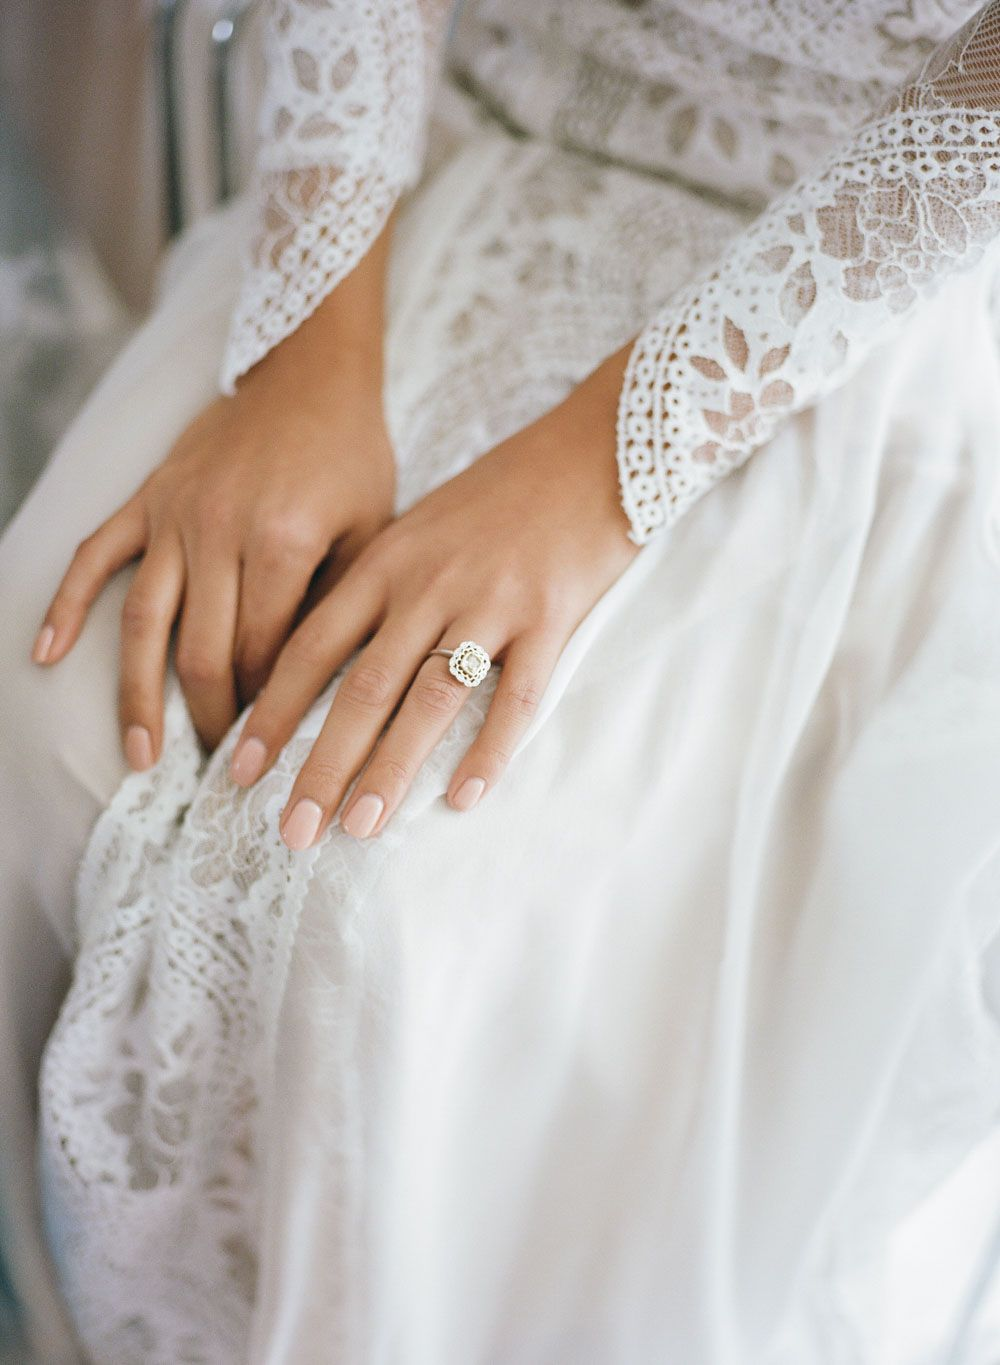 21 Gorgeous Ideas for Your Wedding Day Nails | Natural wedding nails ...